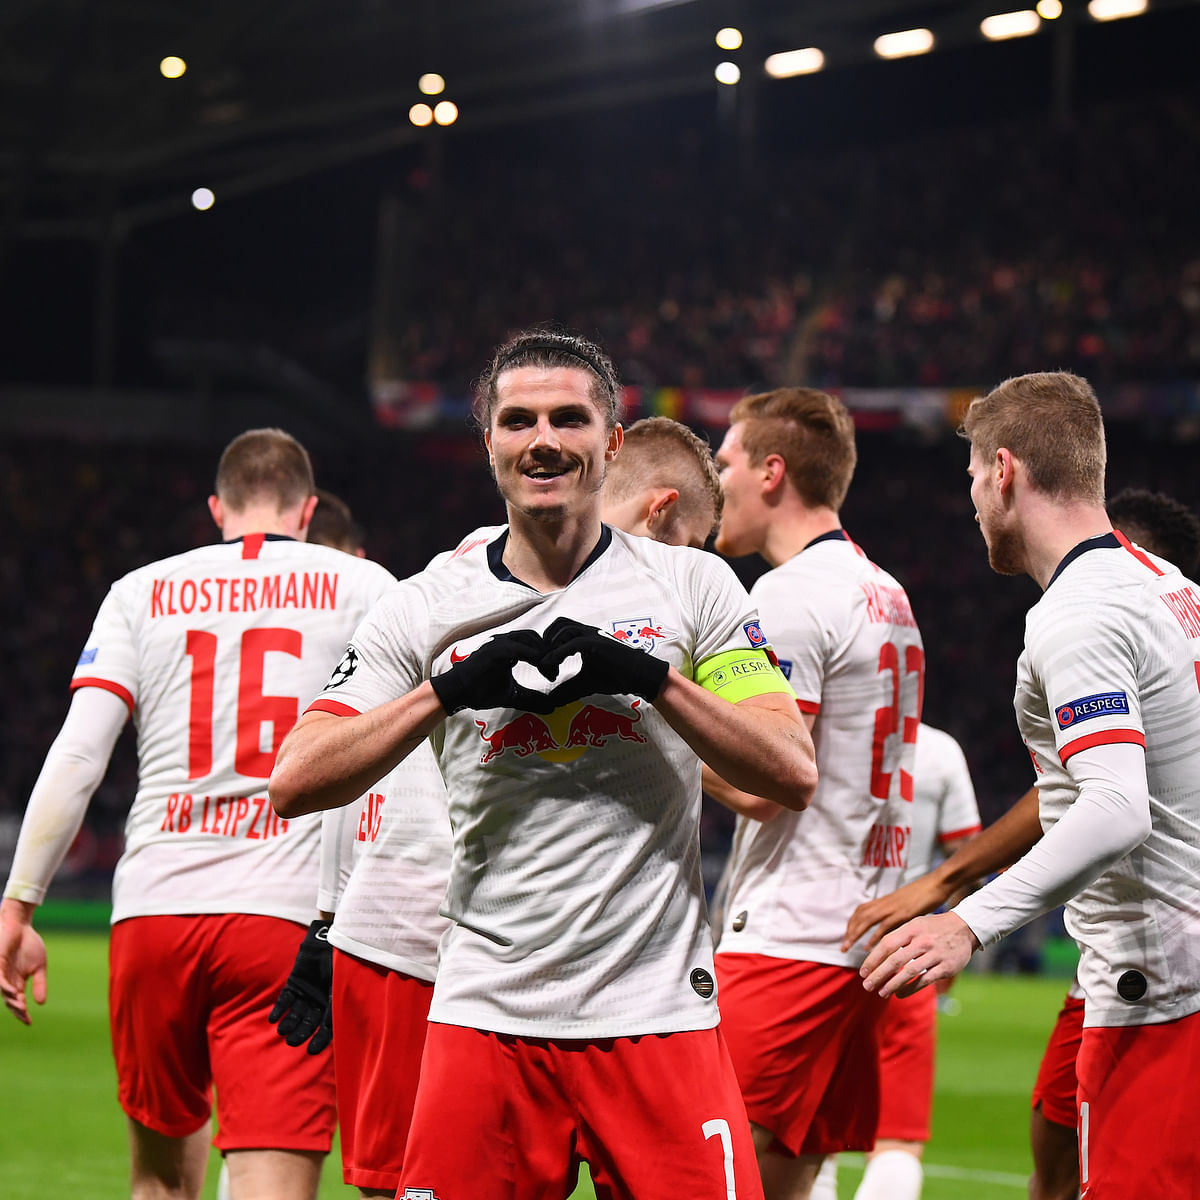 UEFA Champions League: RB Leipzig thrash Mourinho's Tottenham 3-0 to reach quarter-finals